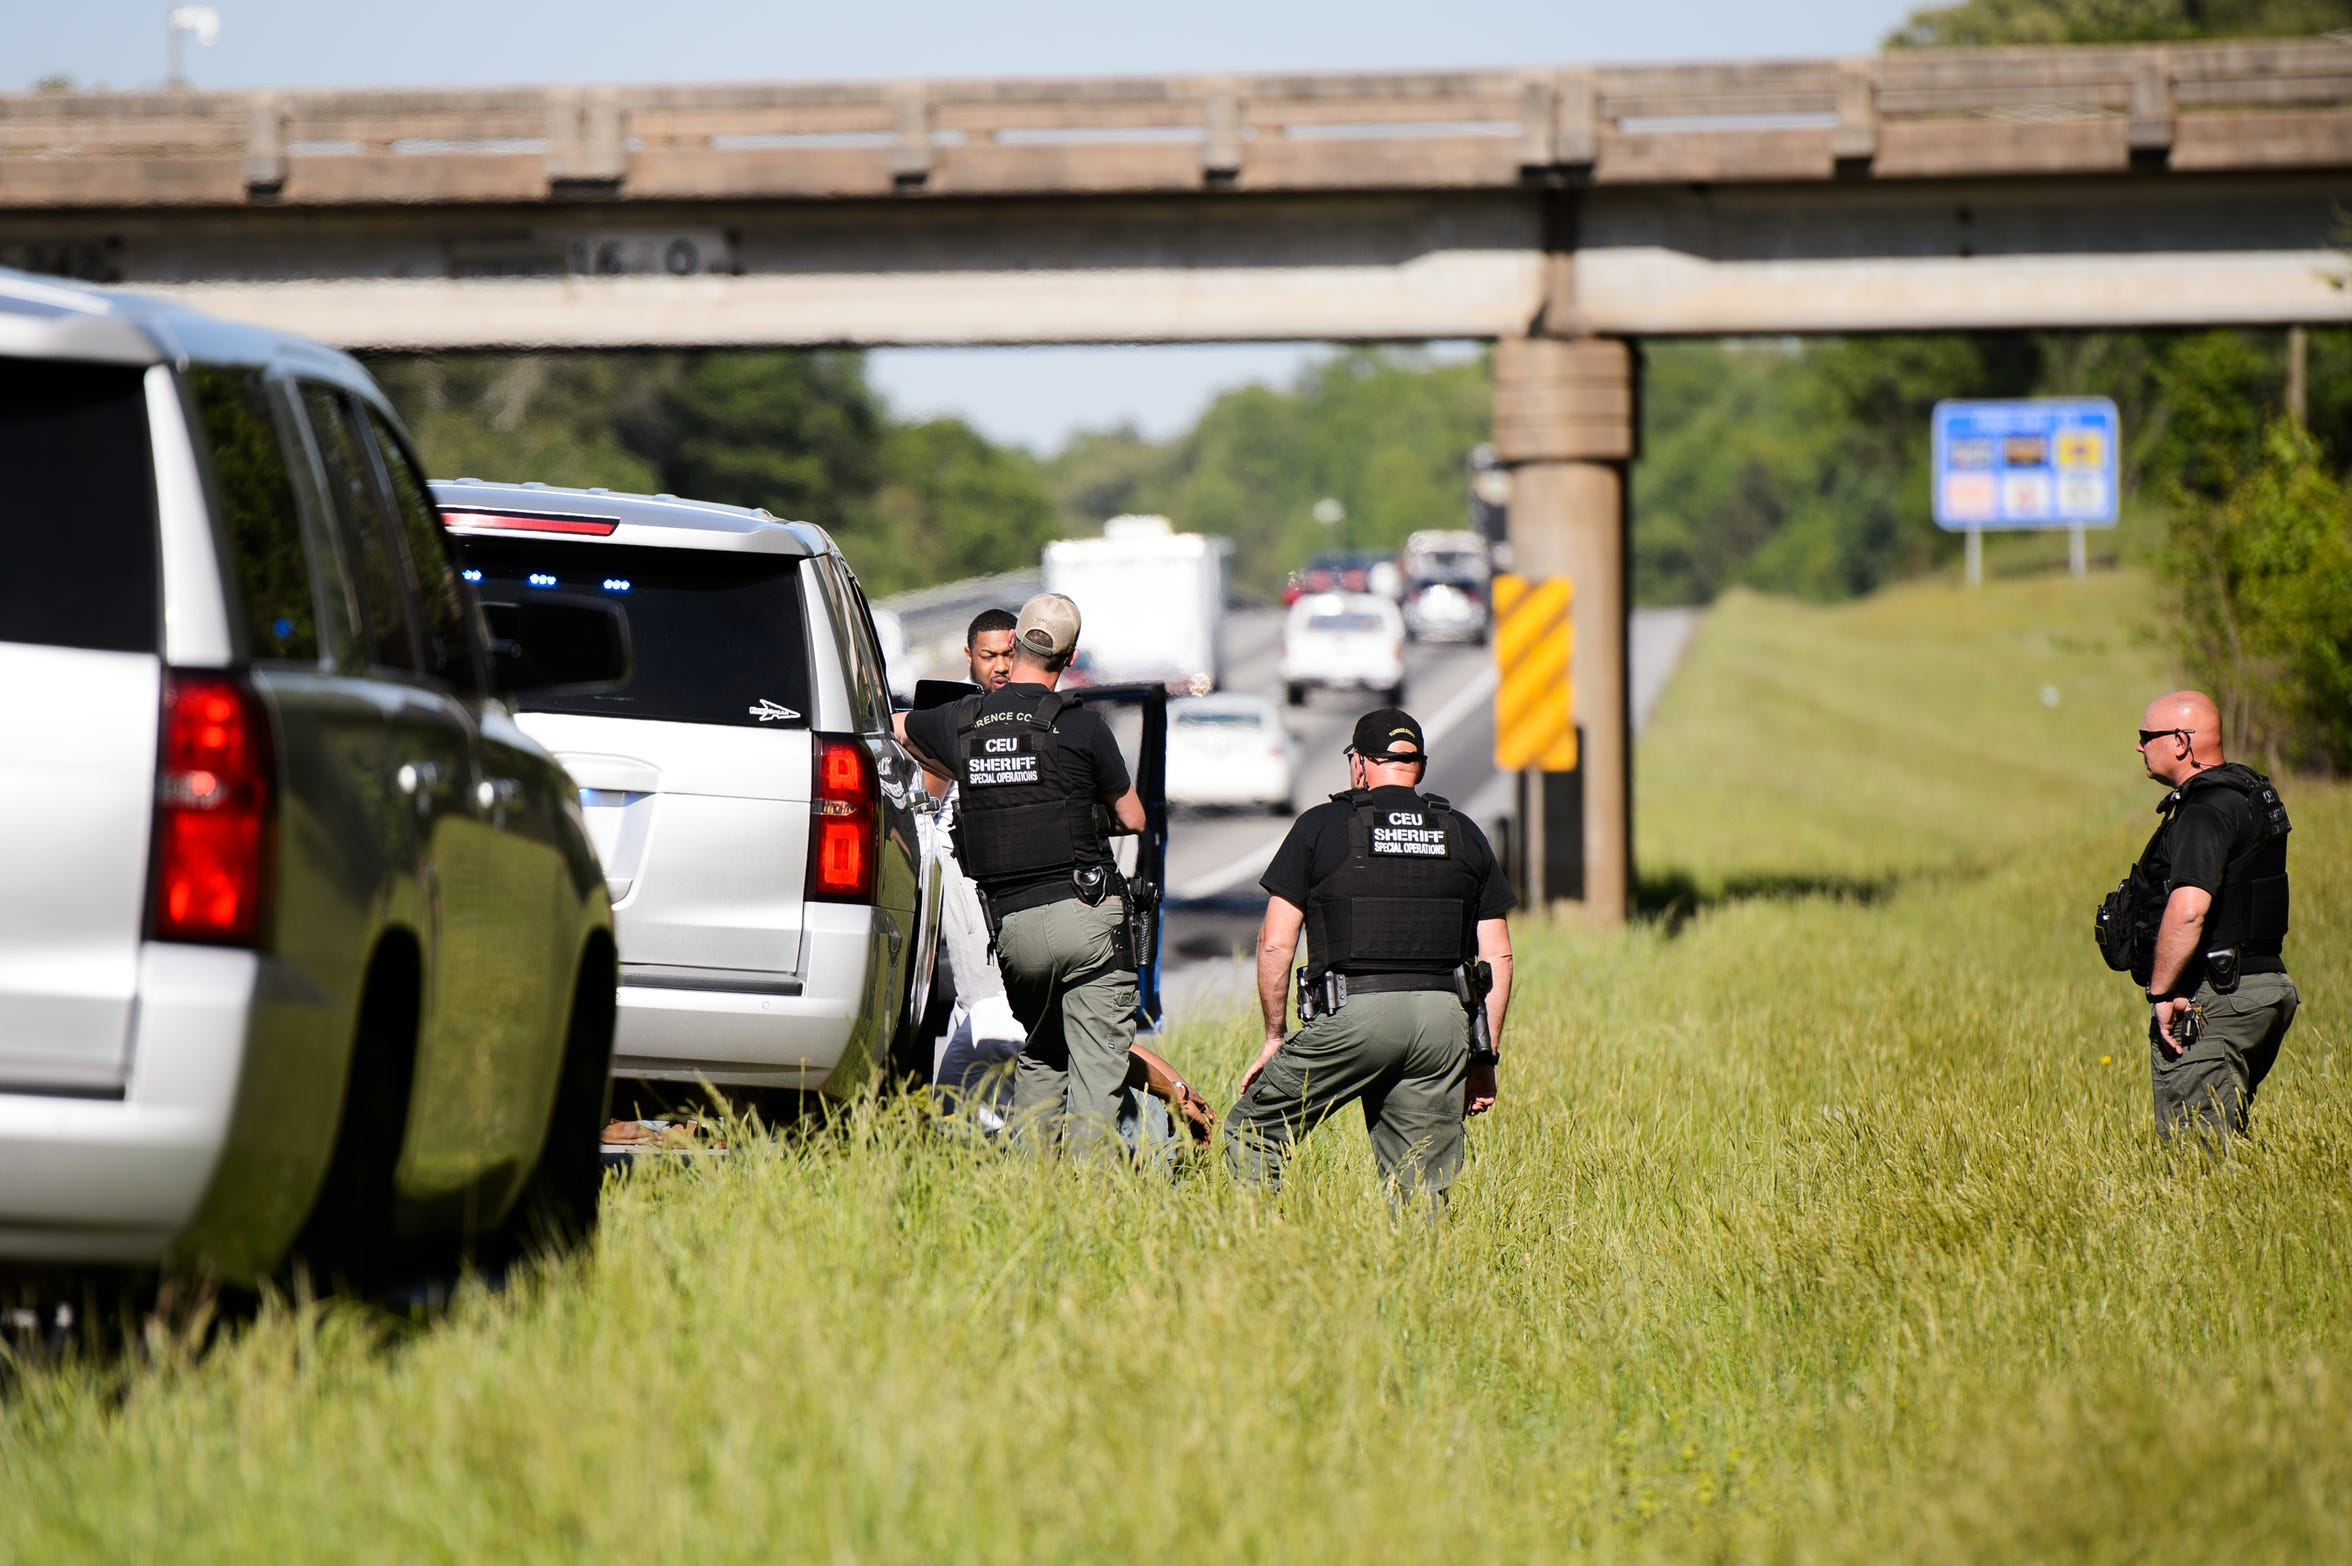 Law enforcement officers search a vehicle on Interstate 85. On average, officers searched every fifth car stopped during Rolling Thunder 2018 — hundreds of vehicles in all. They brought in a drug-sniffing dog 128 times and made 40 arrests, 25 of them for felony offenses.